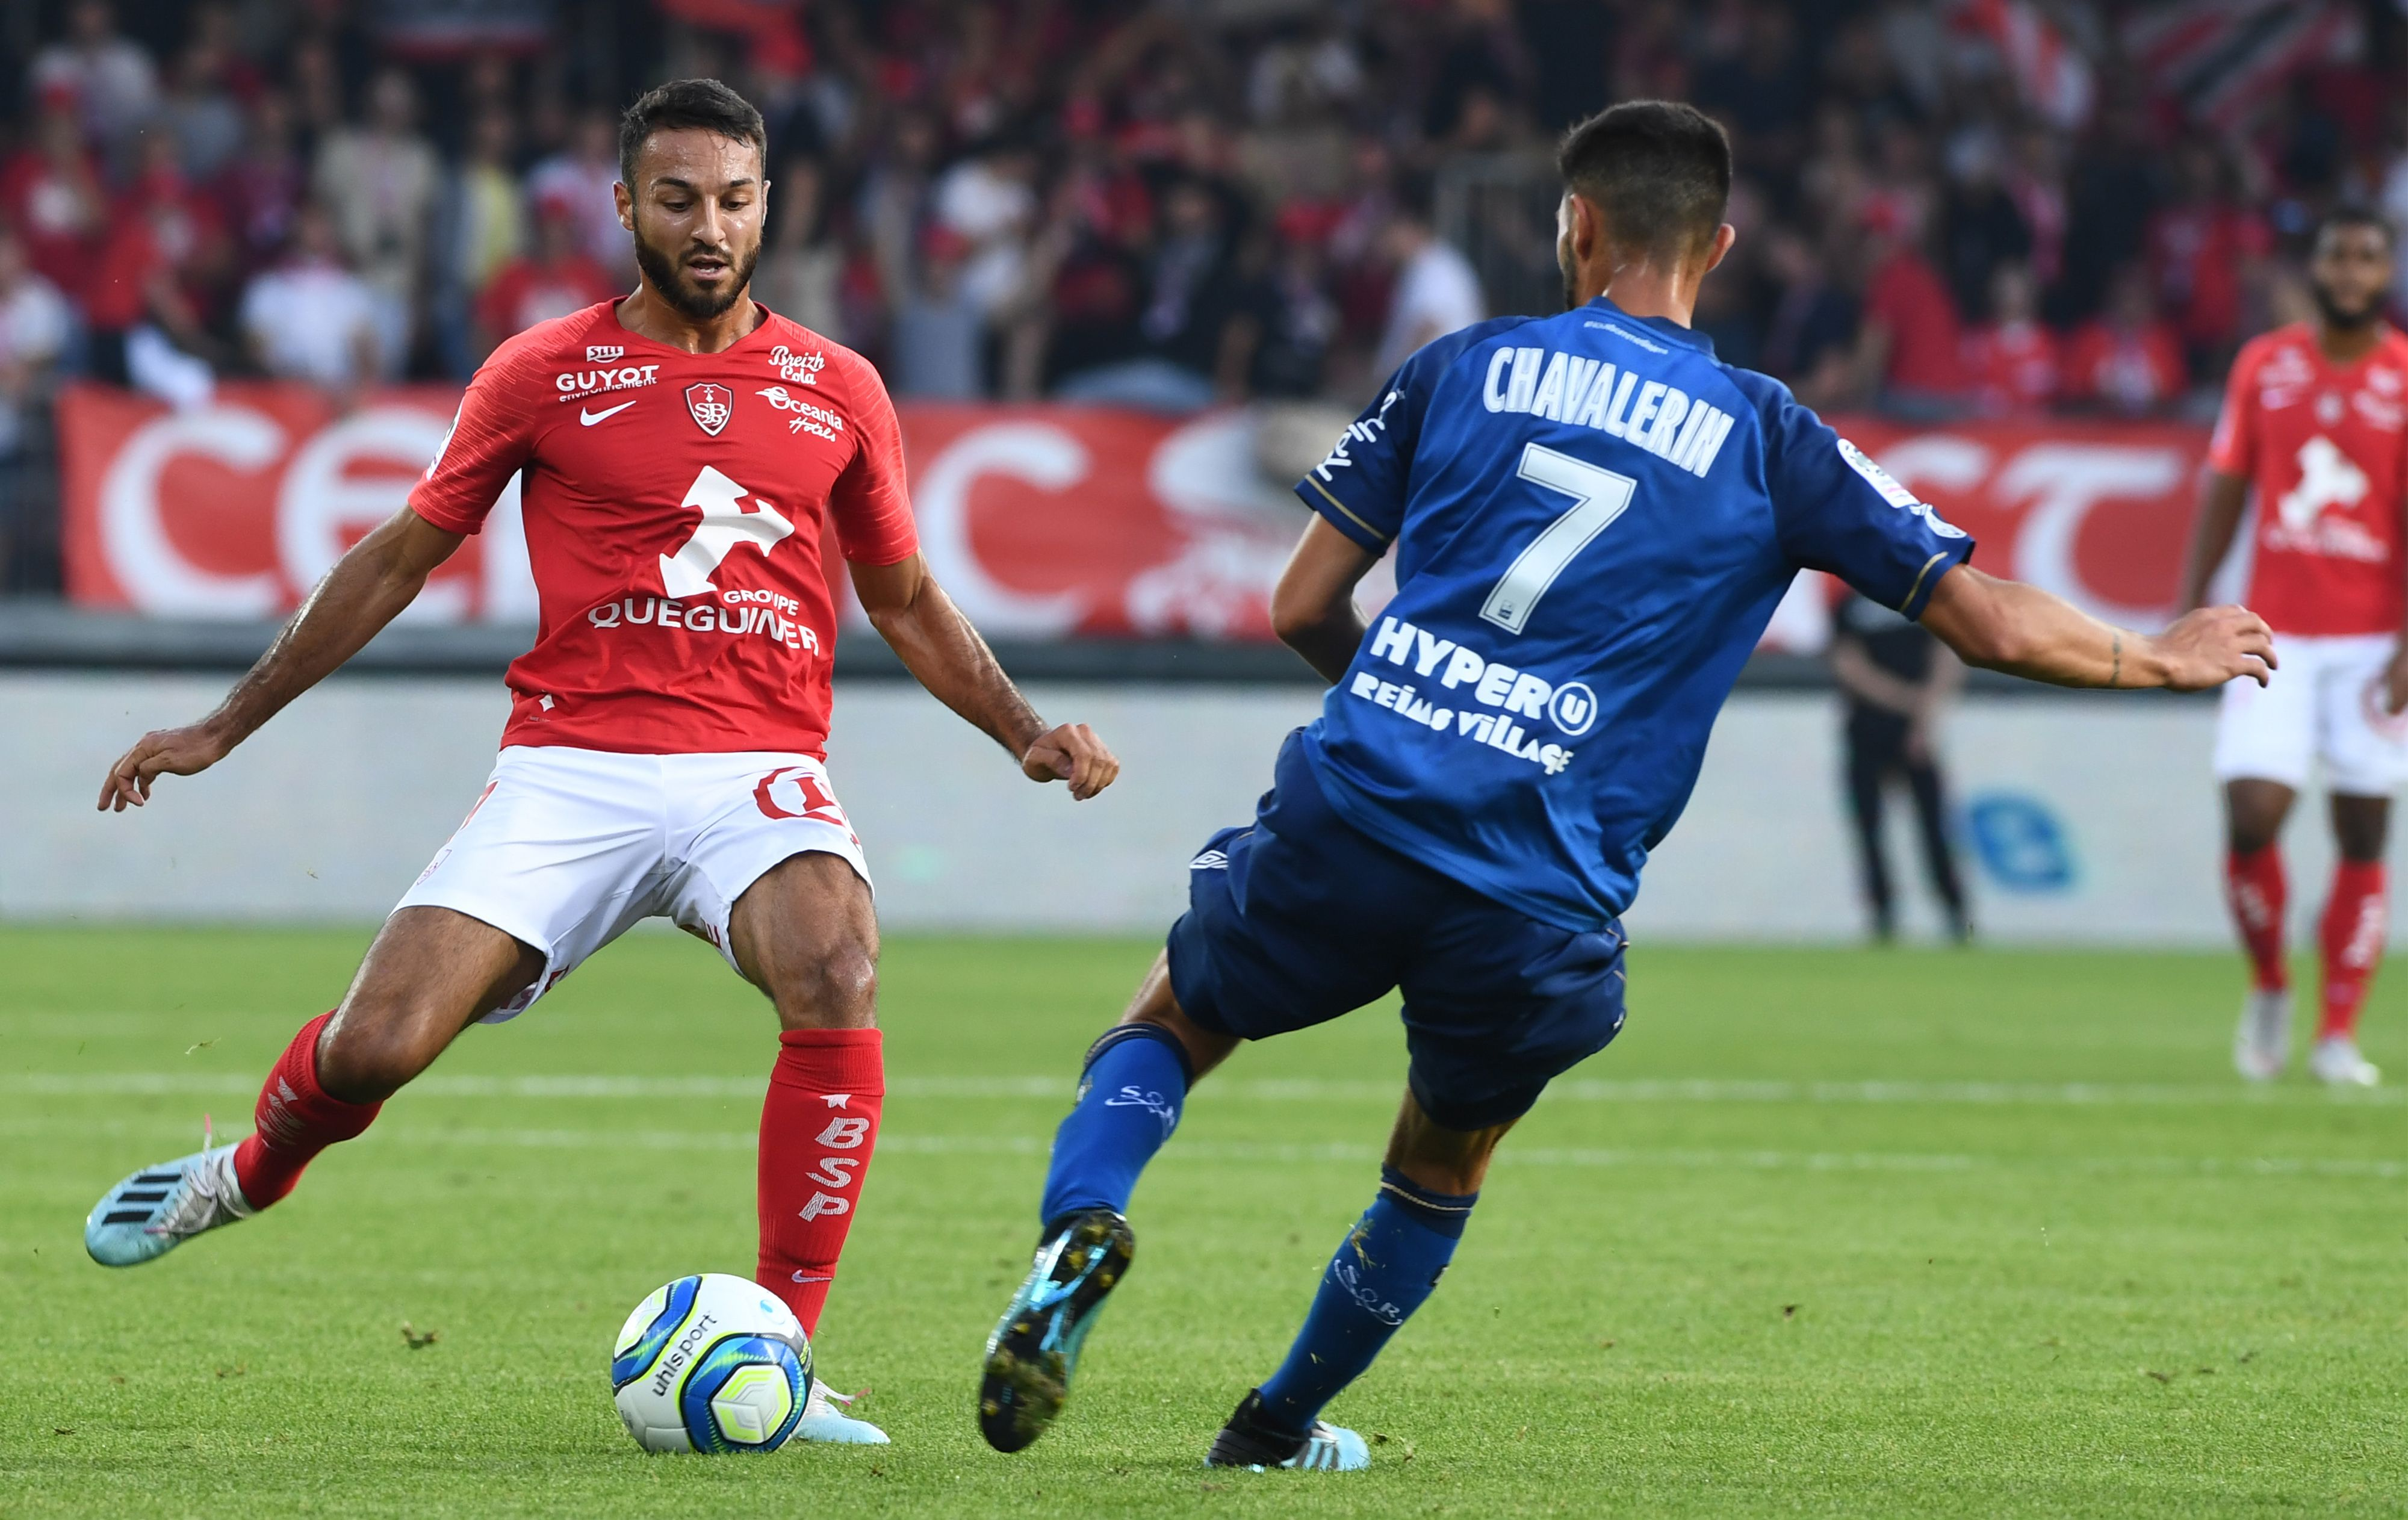 Celtic Are Interested In Haris Belkebla - Belkebla(L) vying for the ball